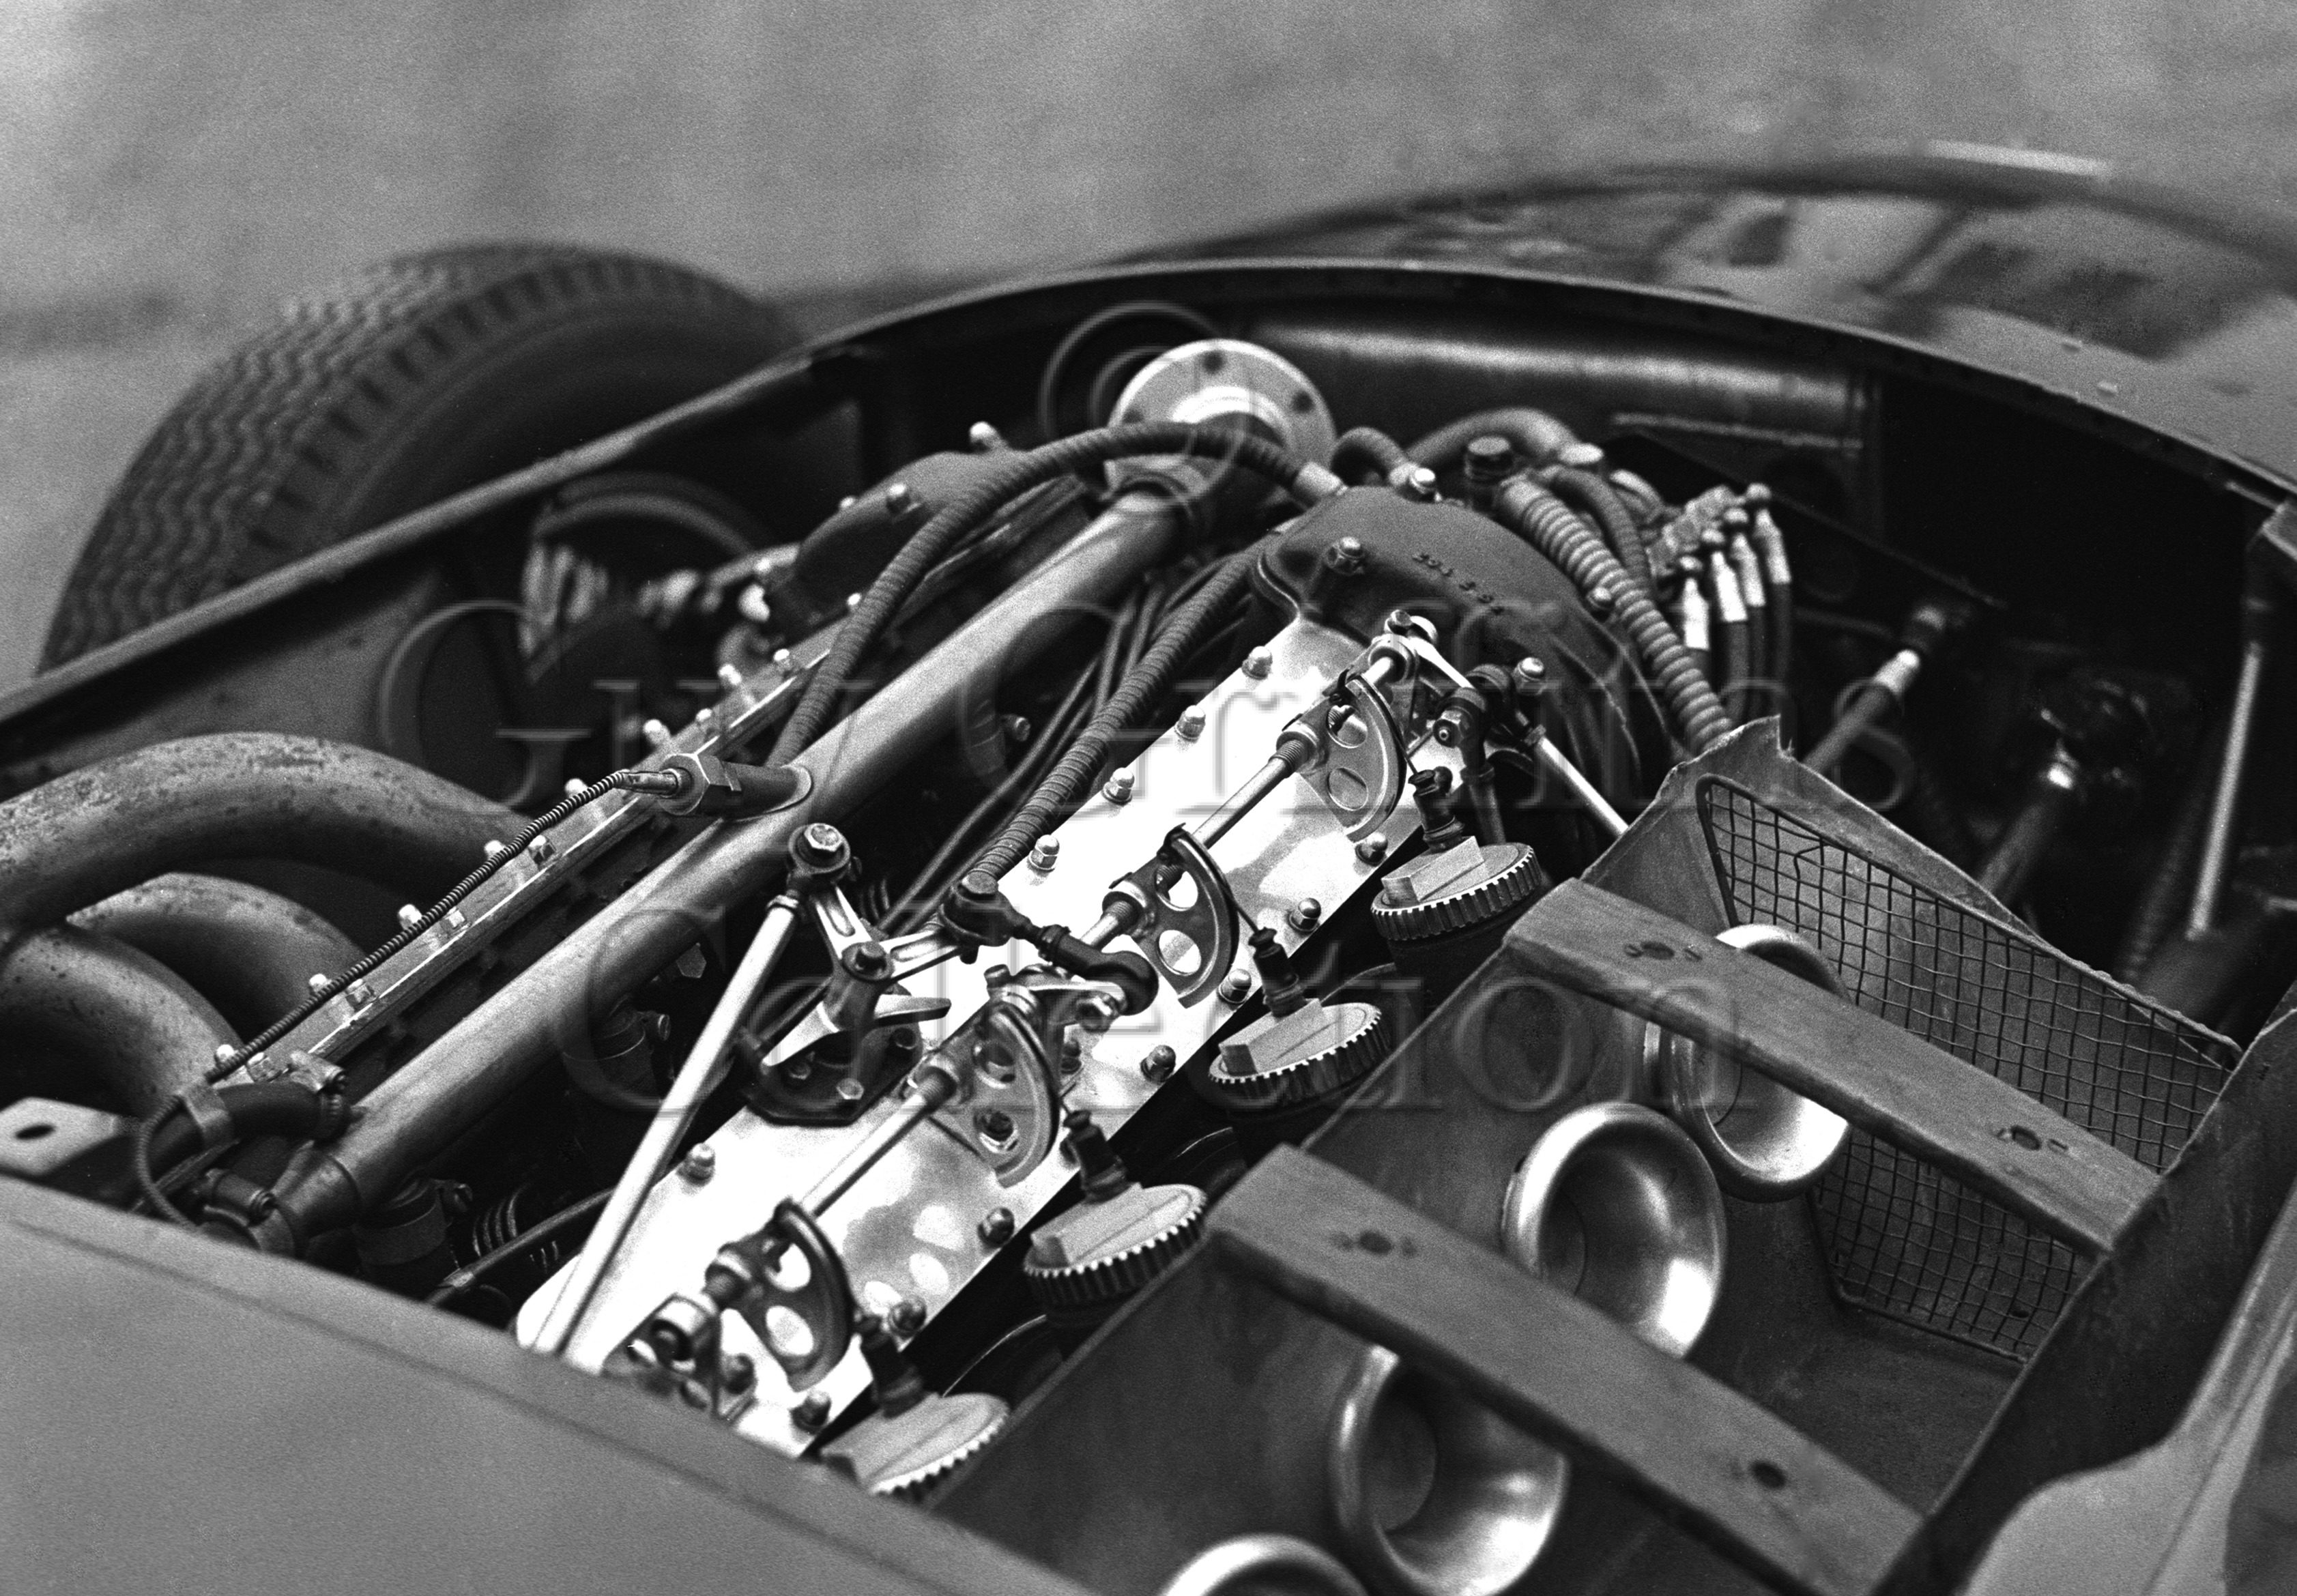 113-856–Vanwall-engine–Vanwall-factory–20-11-1968.jpg - The Guy Griffiths Collection